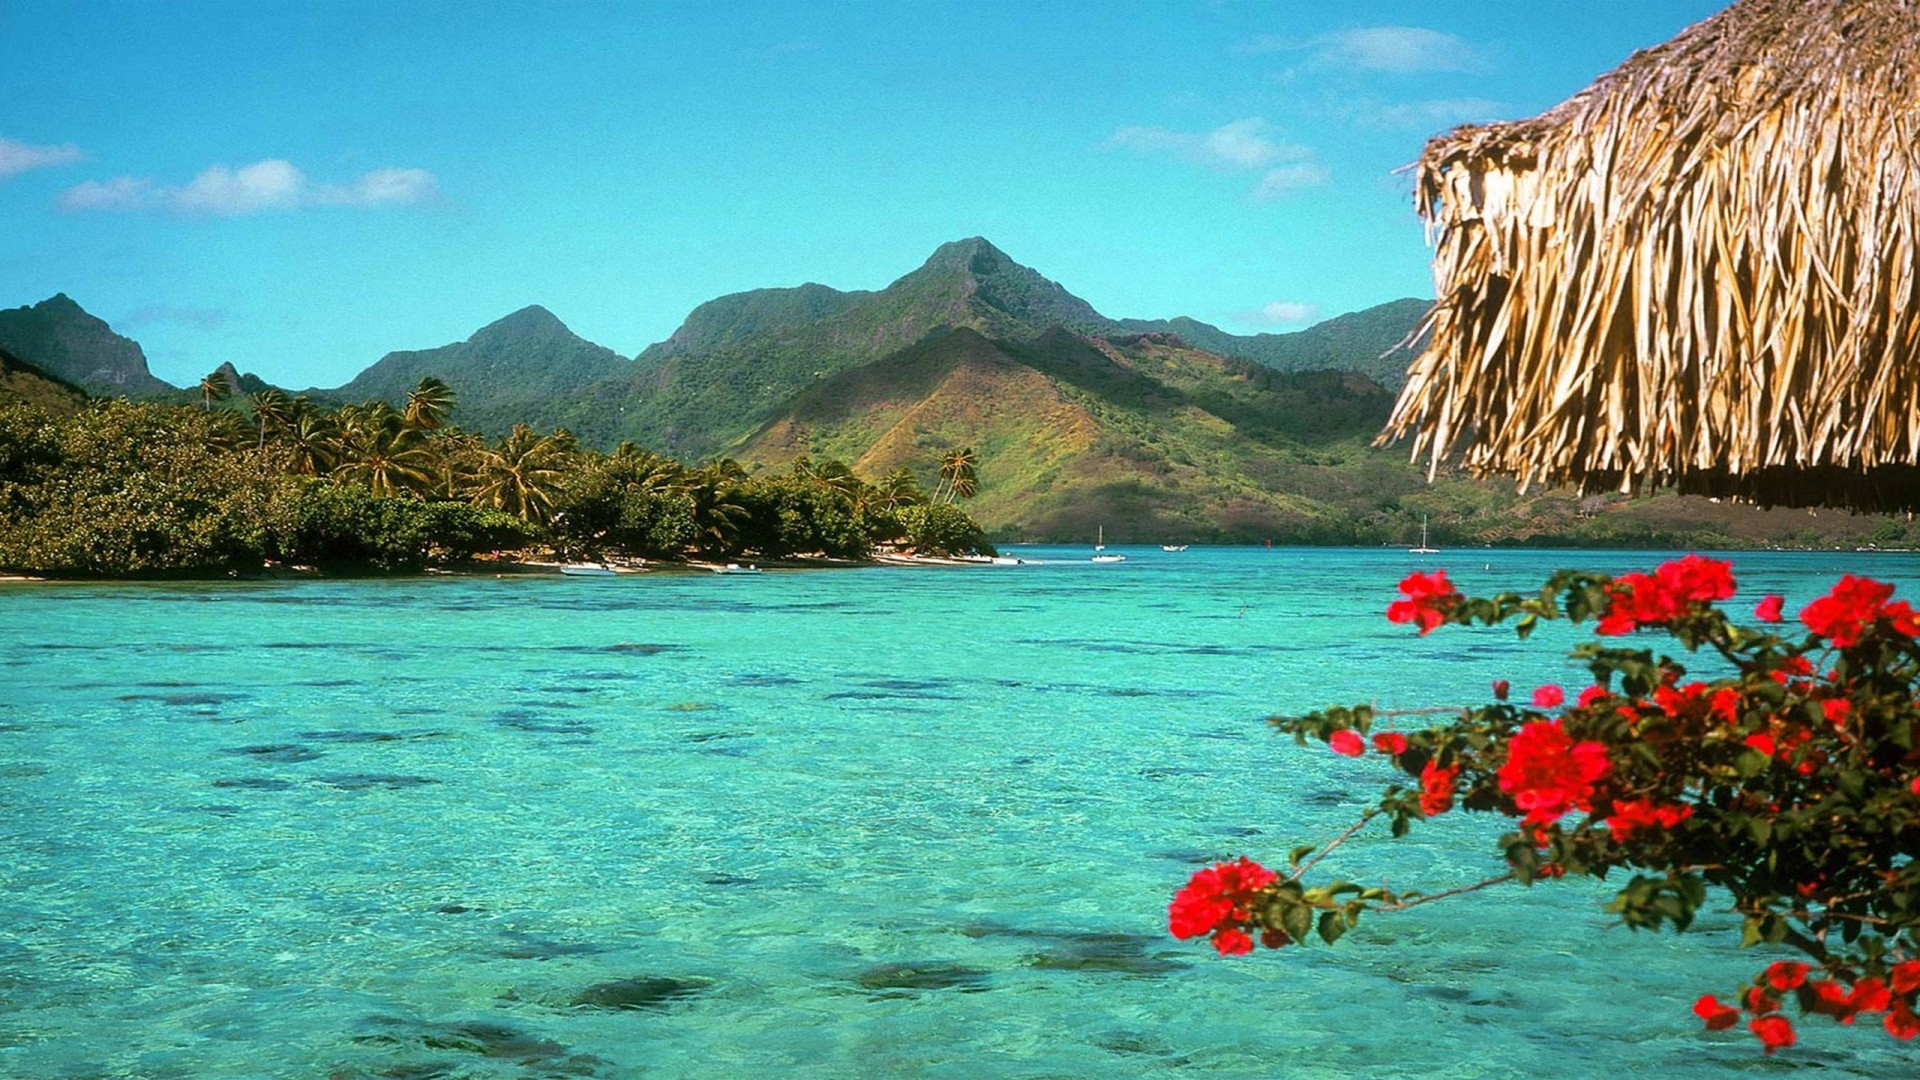 Tropical Paradise Beach Hd Wallpaper For Nexus 7 Screens: Beach Background Pictures (65+ Pictures